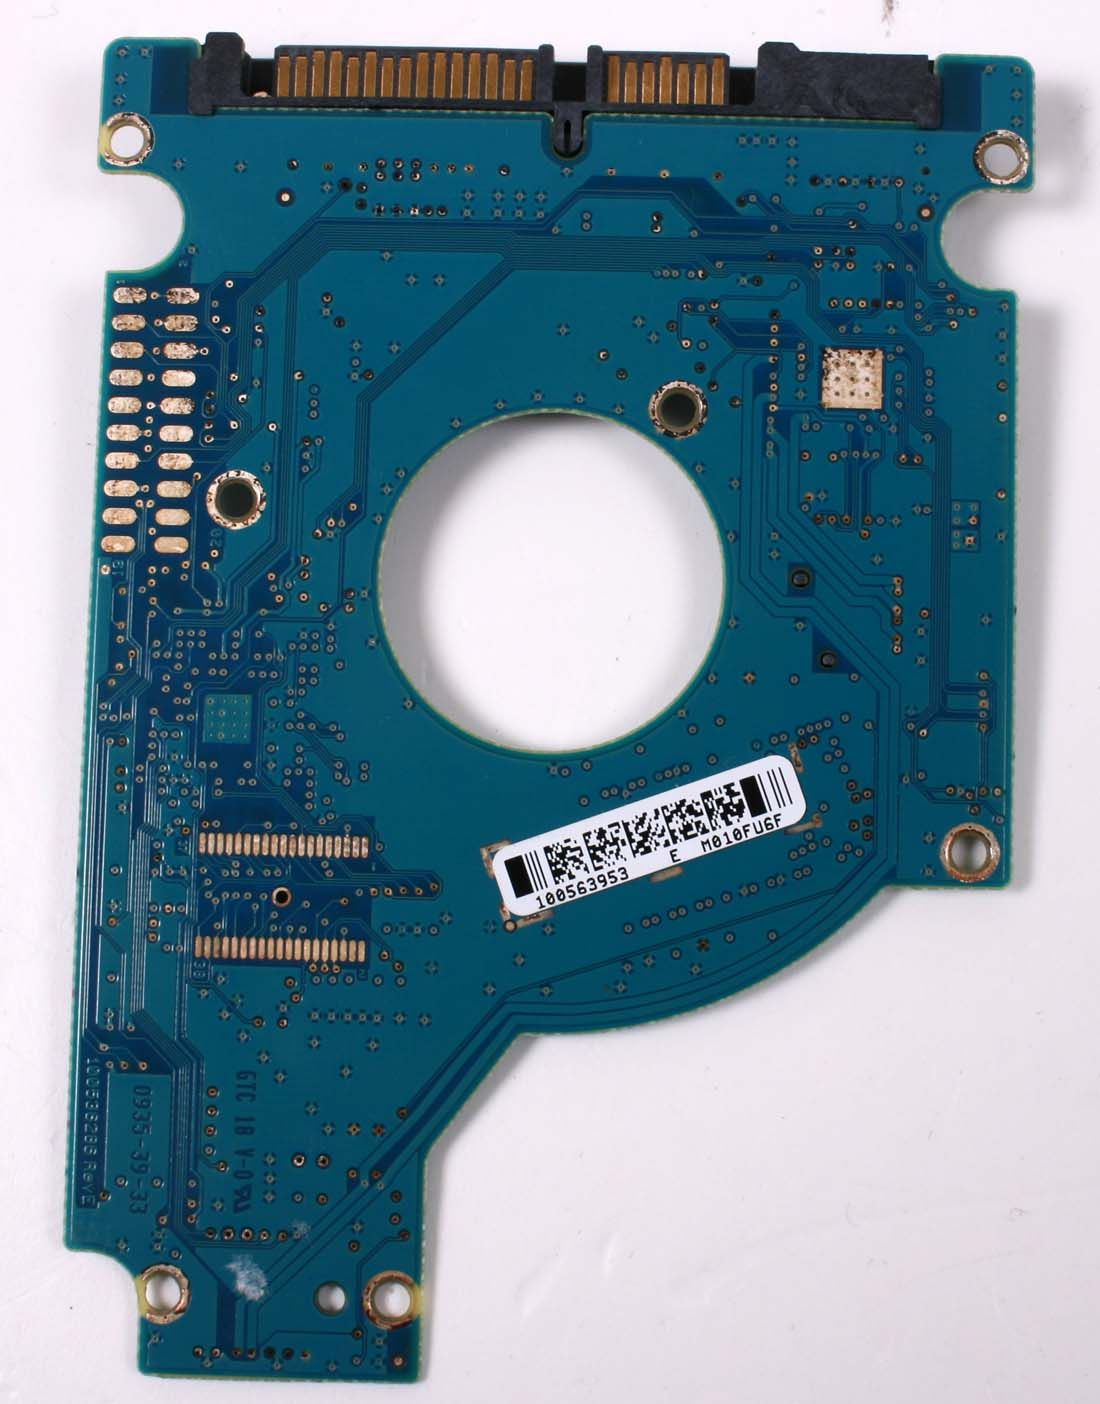 SEAGATE ST9320423AS 320GB 2,5 SATA HARD DRIVE / PCB (CIRCUIT BOARD) ONLY FOR DAT